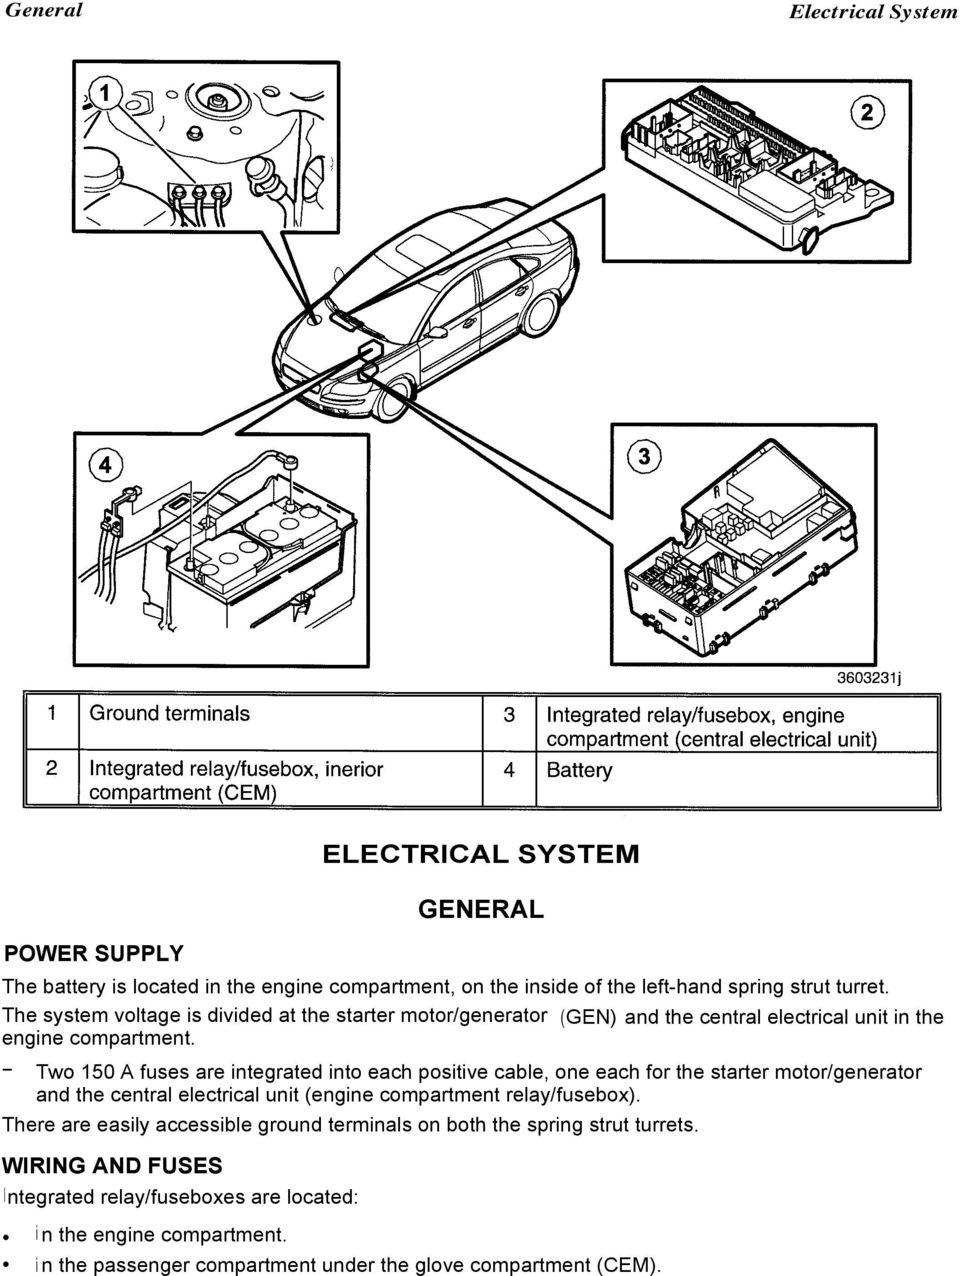 Electrical System General Pdf Relay Fuse Box Corolla Verso Two 150 A Fuses Are Integrated Into Each Positive Cable One For The